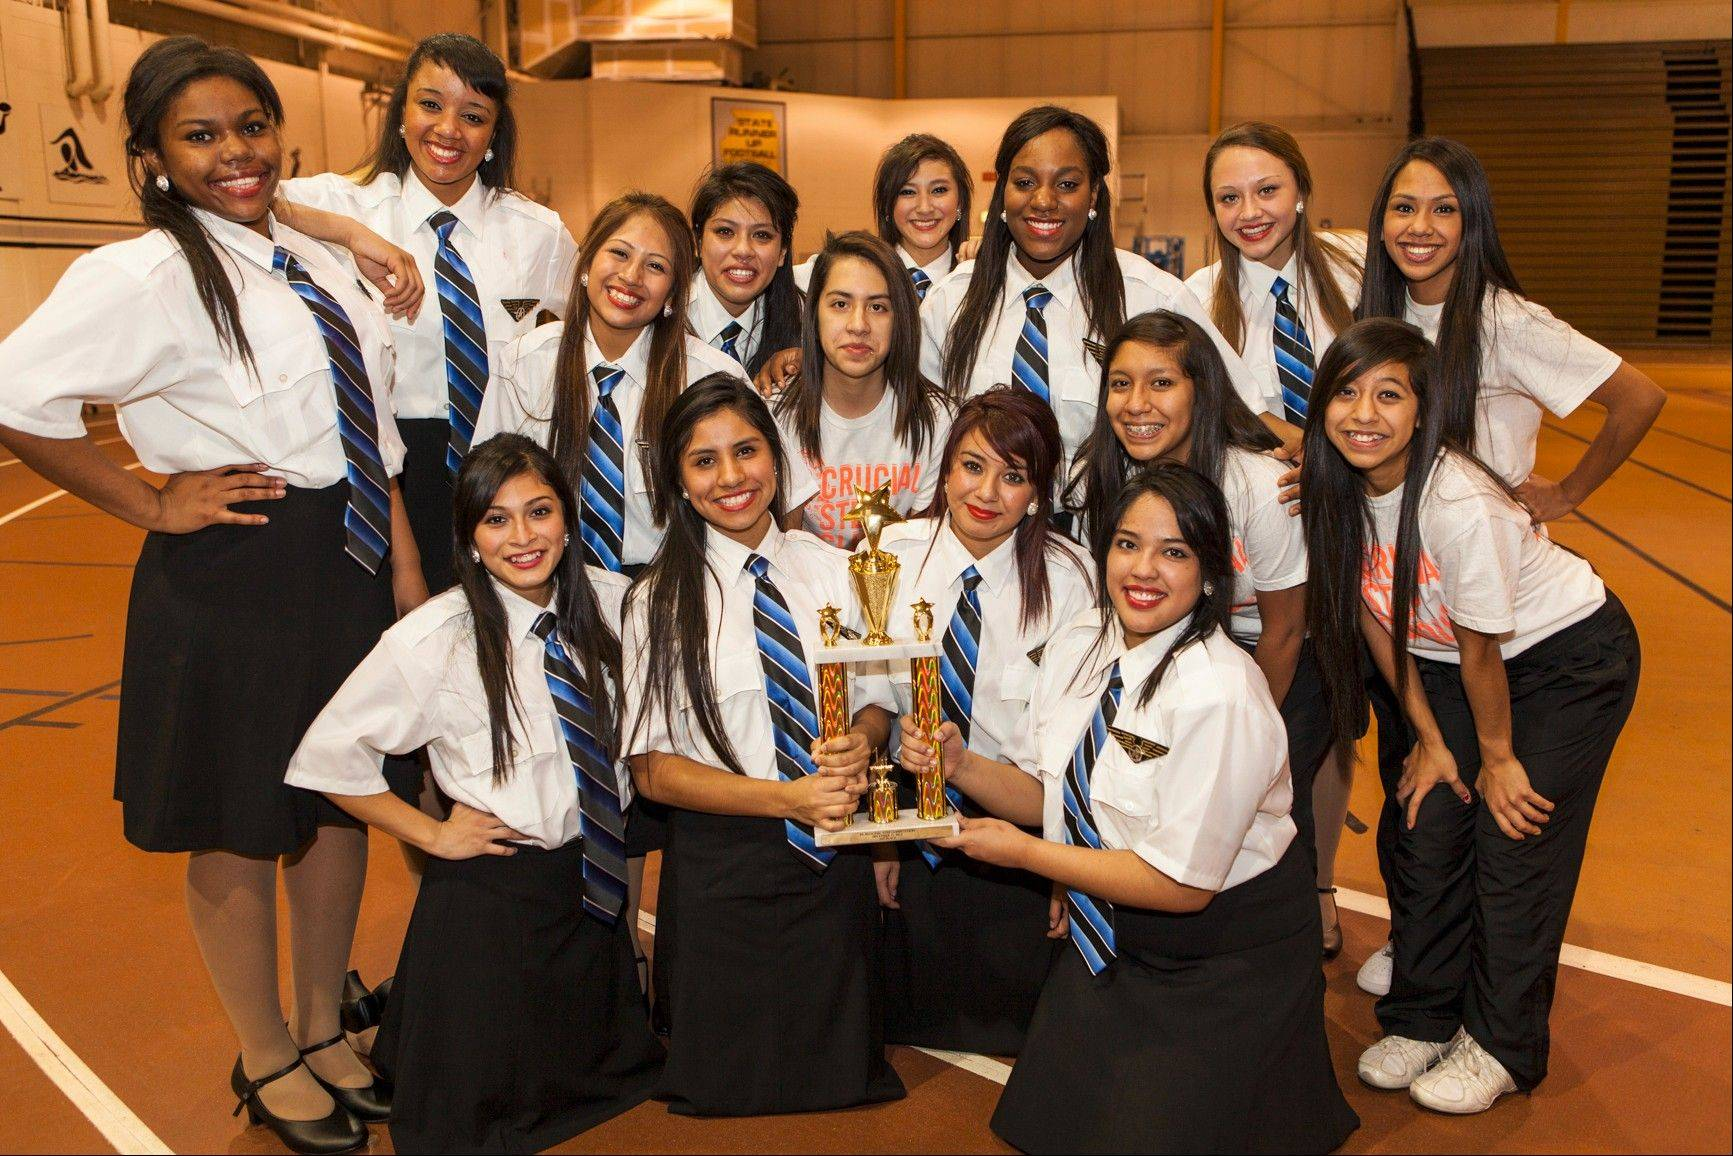 The Wheeling Crucial Step Clique displays its first place trophy at the Illinois Step League competition. Senior Jenny Hernandez, bottom right, is wearing Rising Star wings on her shirt.